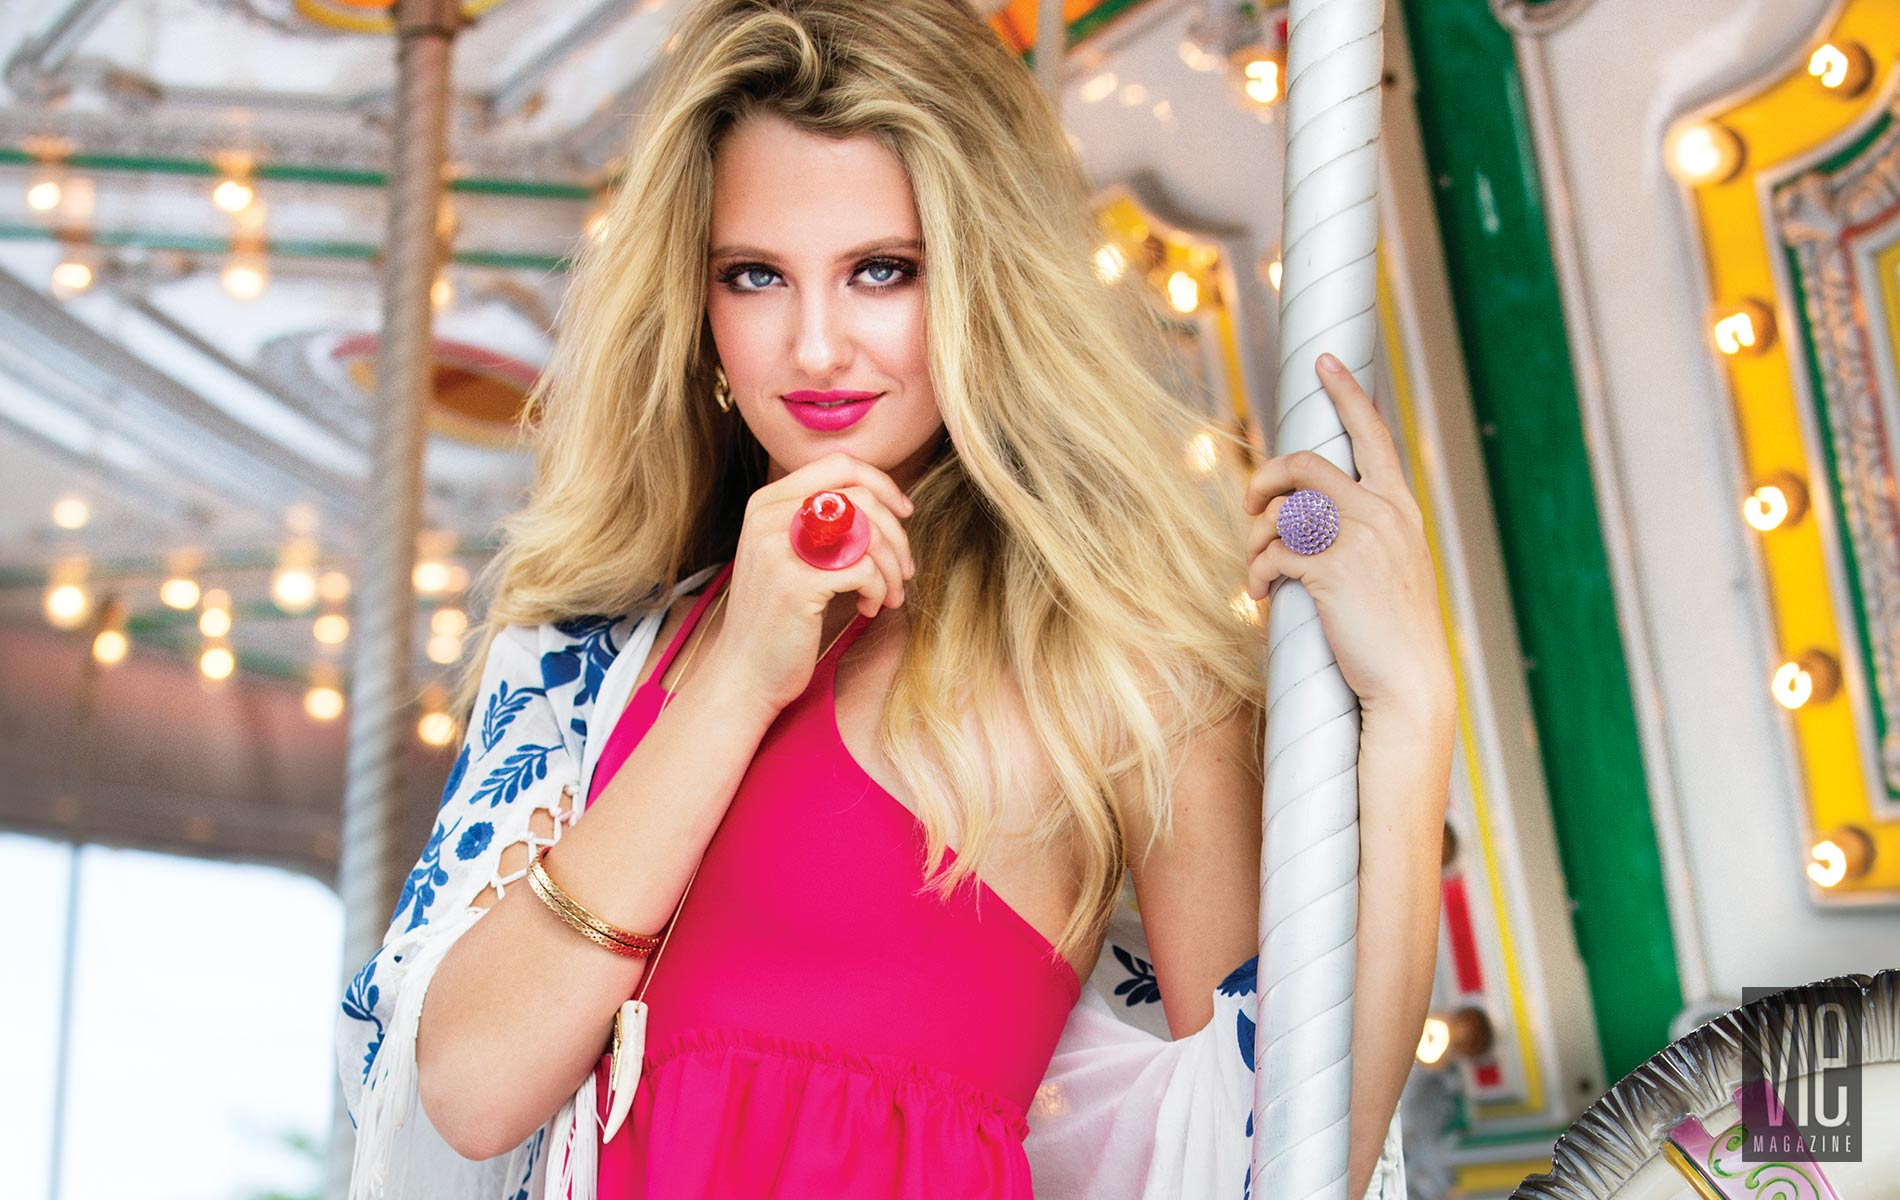 Emme Martin wearing a Cayce Collins Swimsuit on a carousel in Baytowne Wharf